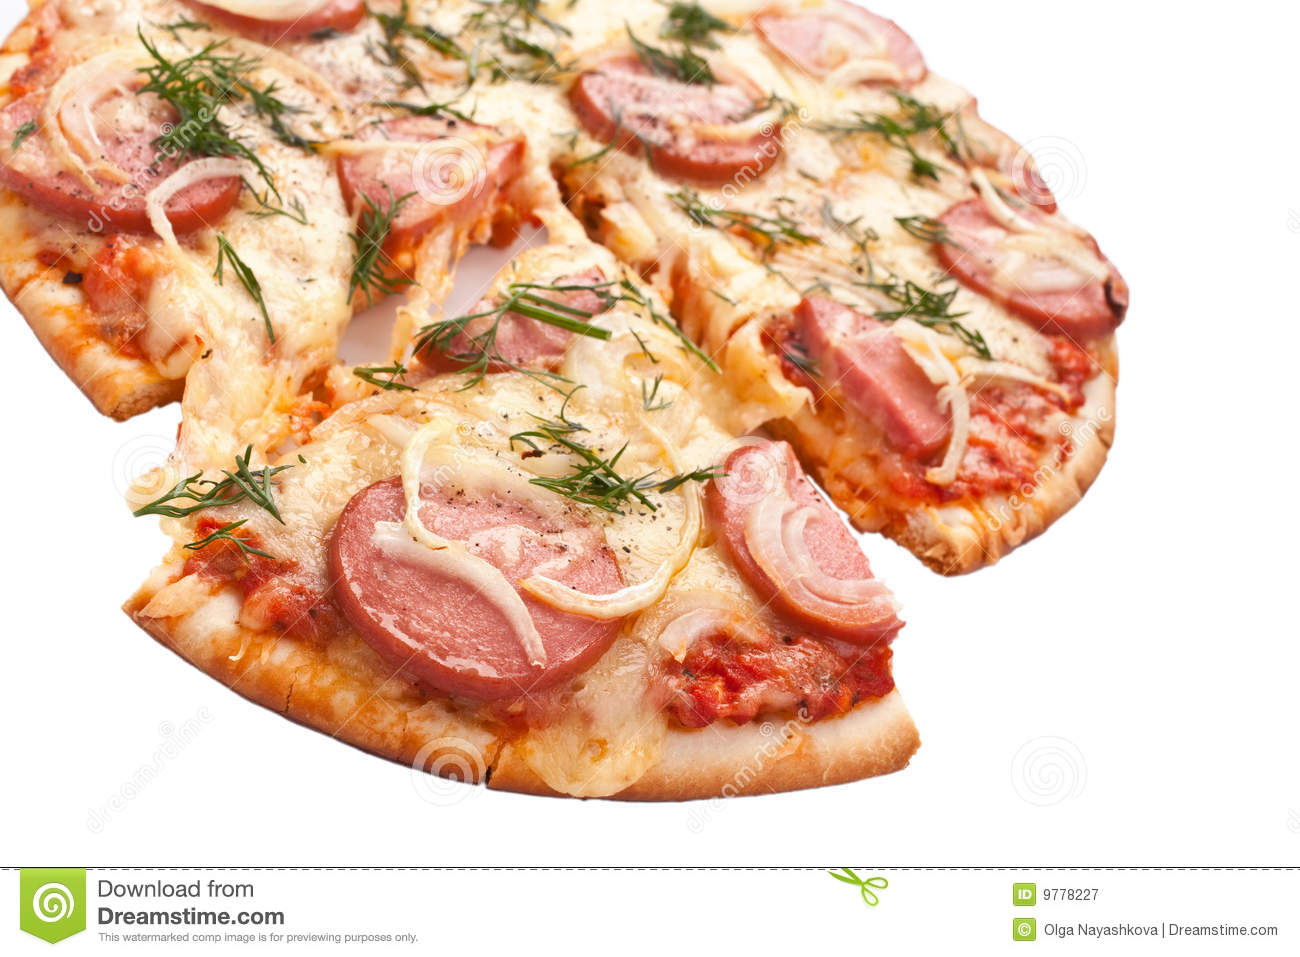 Download Sliced Sausage And Onion Pizza Stock Image - Image of melted, piece: 9778227